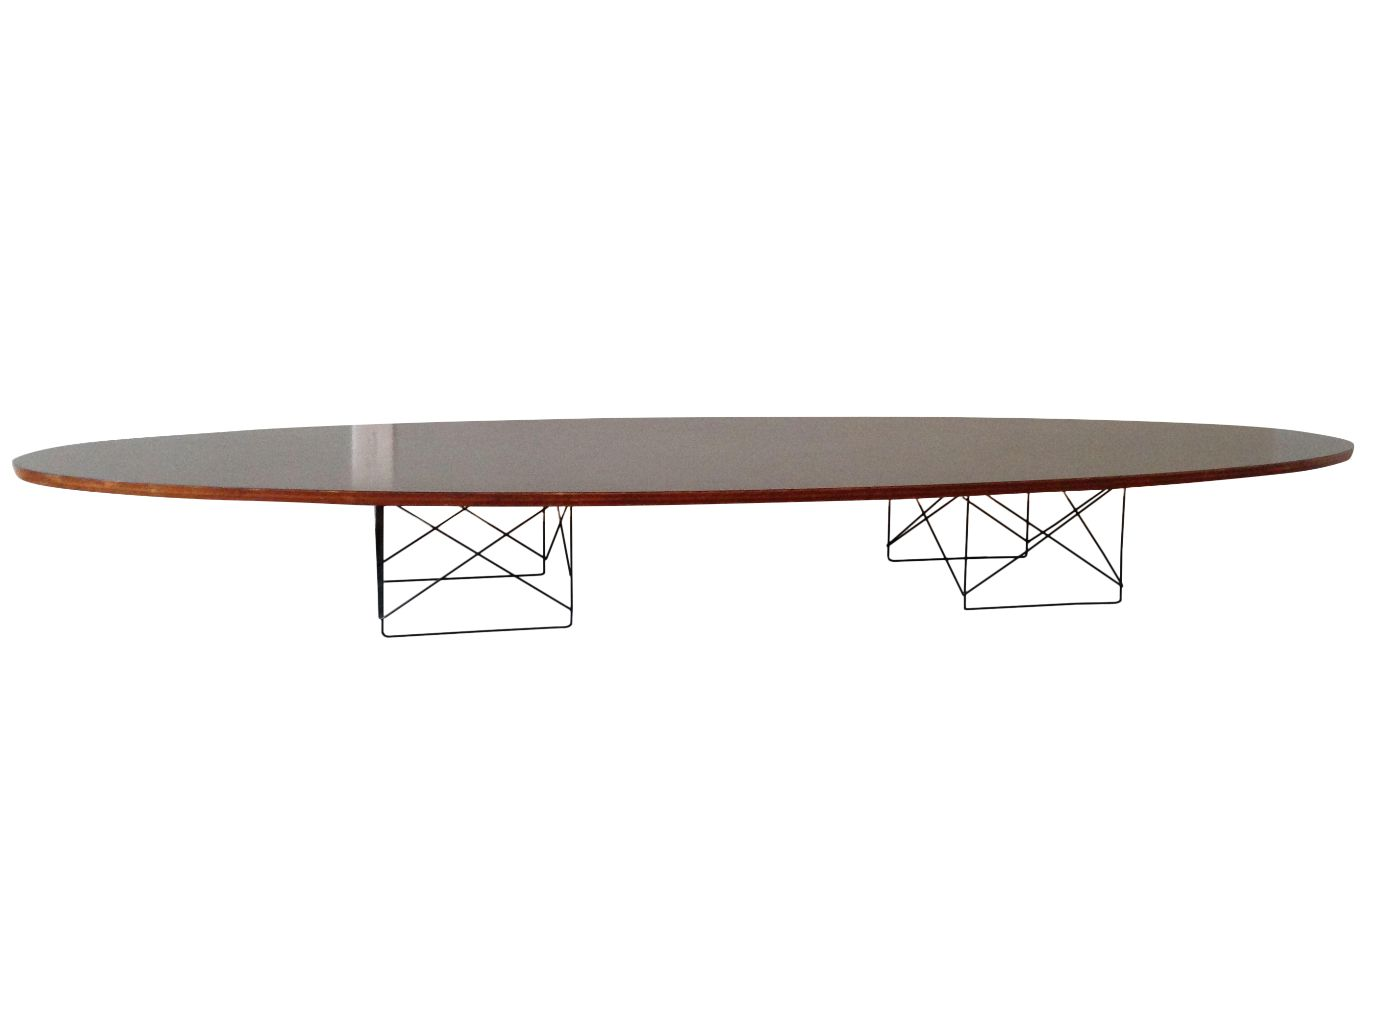 eames elliptical coffee table early design chairish. Black Bedroom Furniture Sets. Home Design Ideas